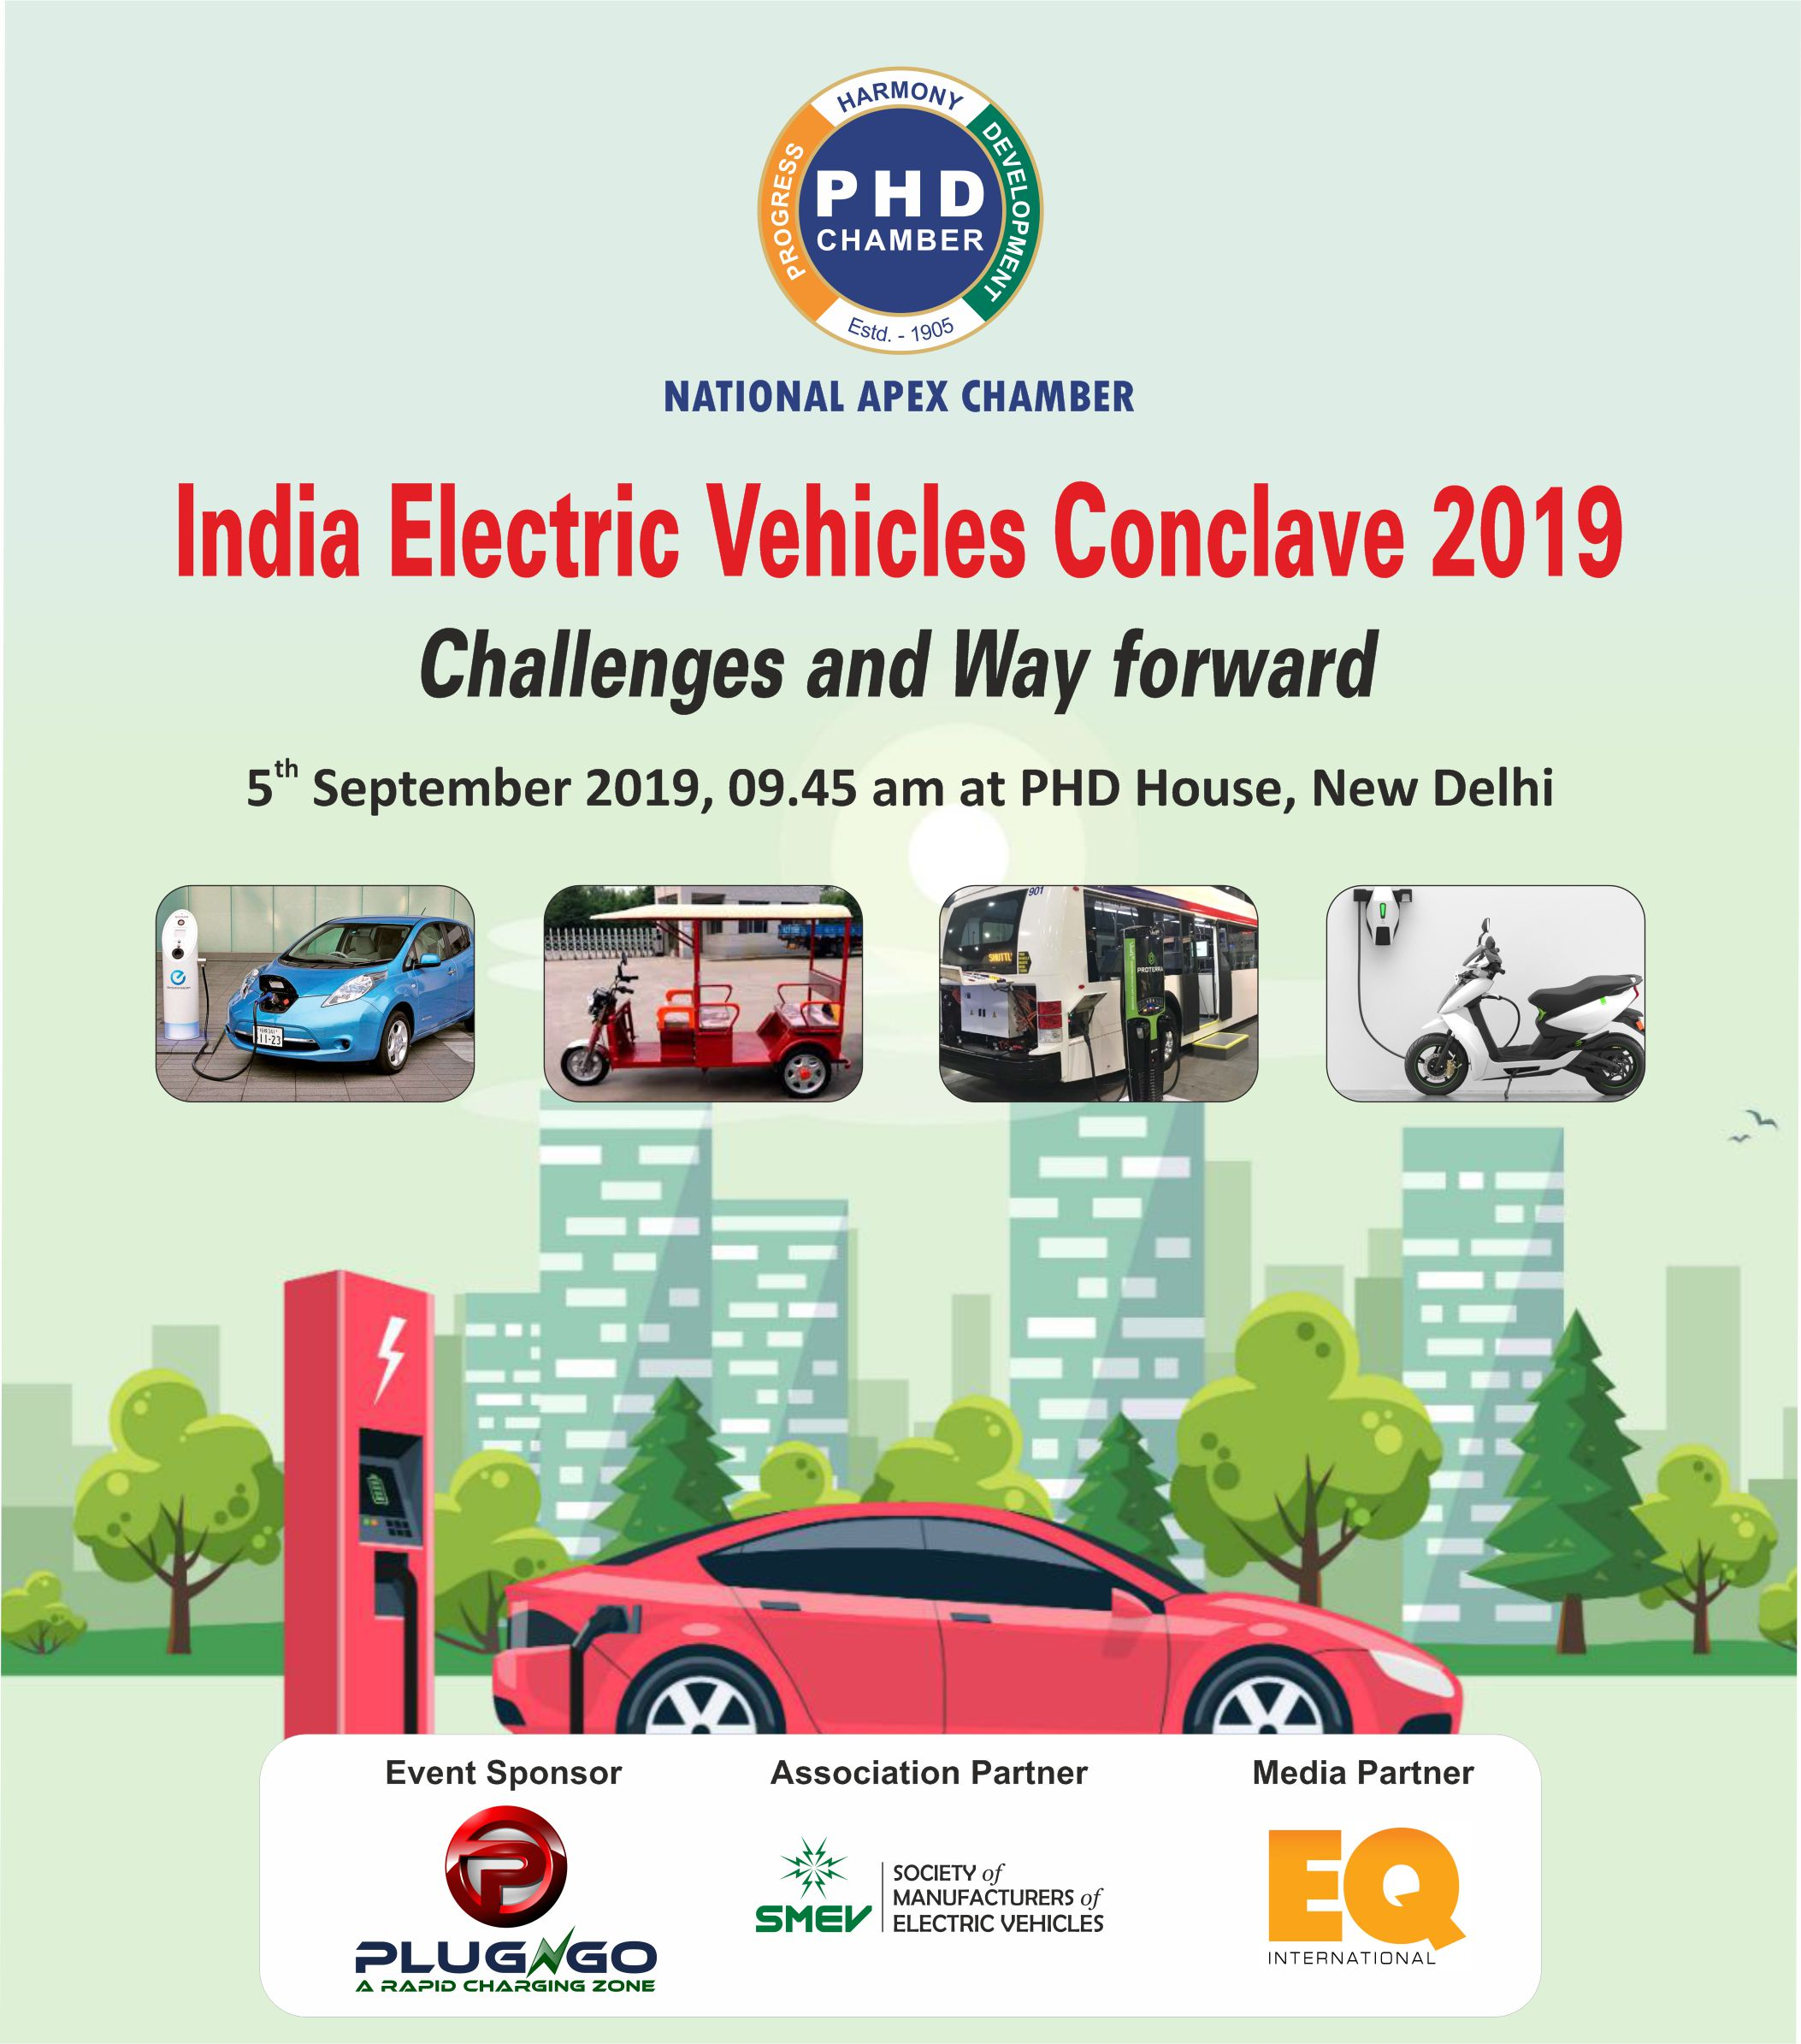 India Electric Vehicles Conclave 2019